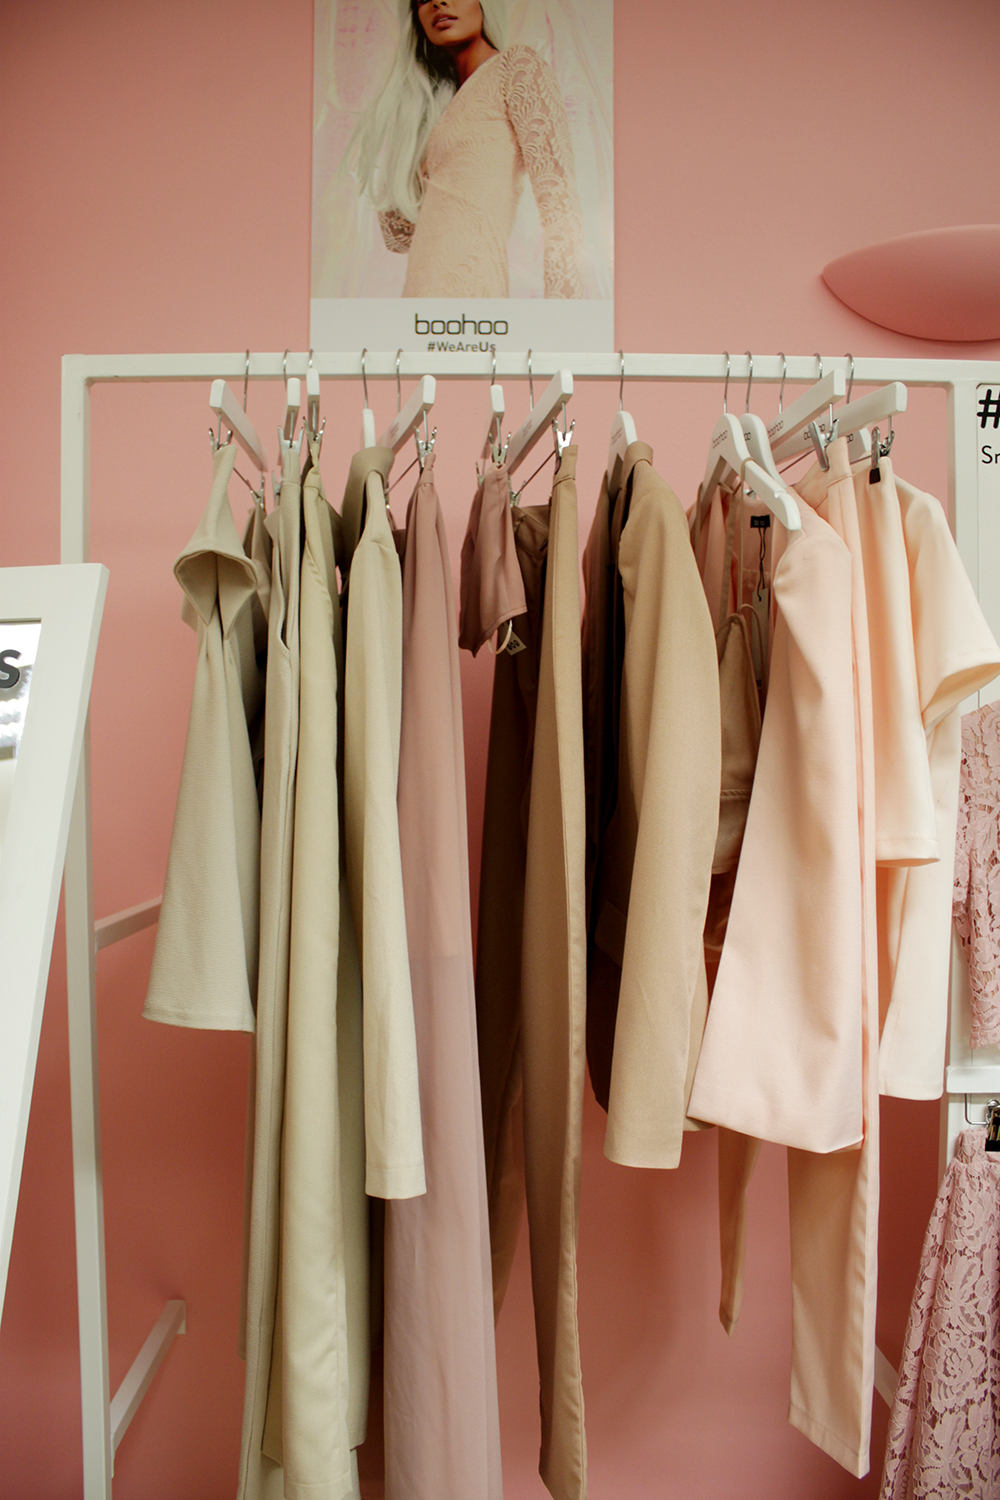 boohoo blog event, london, pastel pink clothes, spring